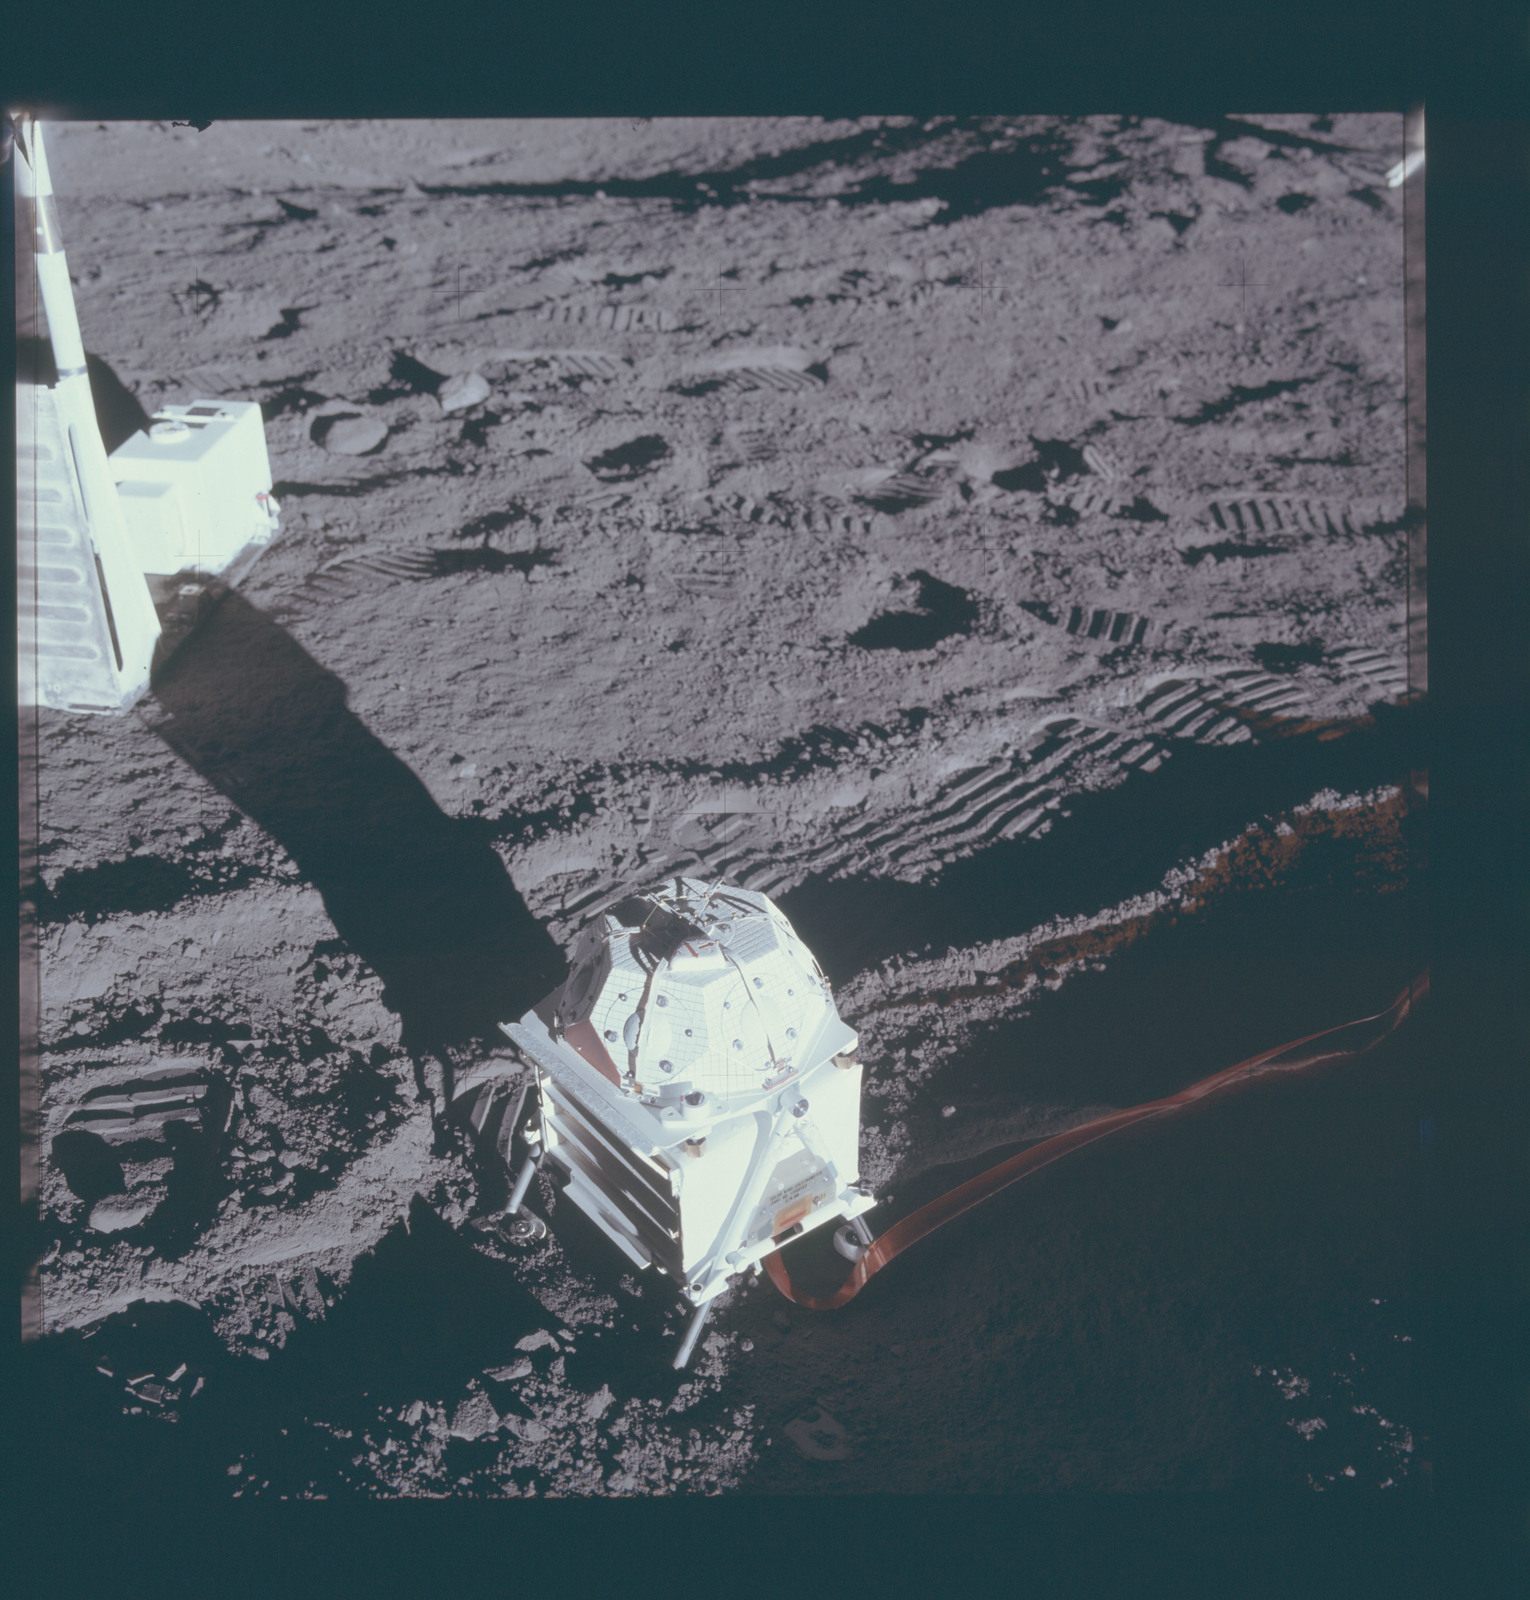 AS12-46-6812 - Apollo 12 - Apollo 12 Mission image  - View of Solar-wind spectrometer experiment deployed on the lunar surface